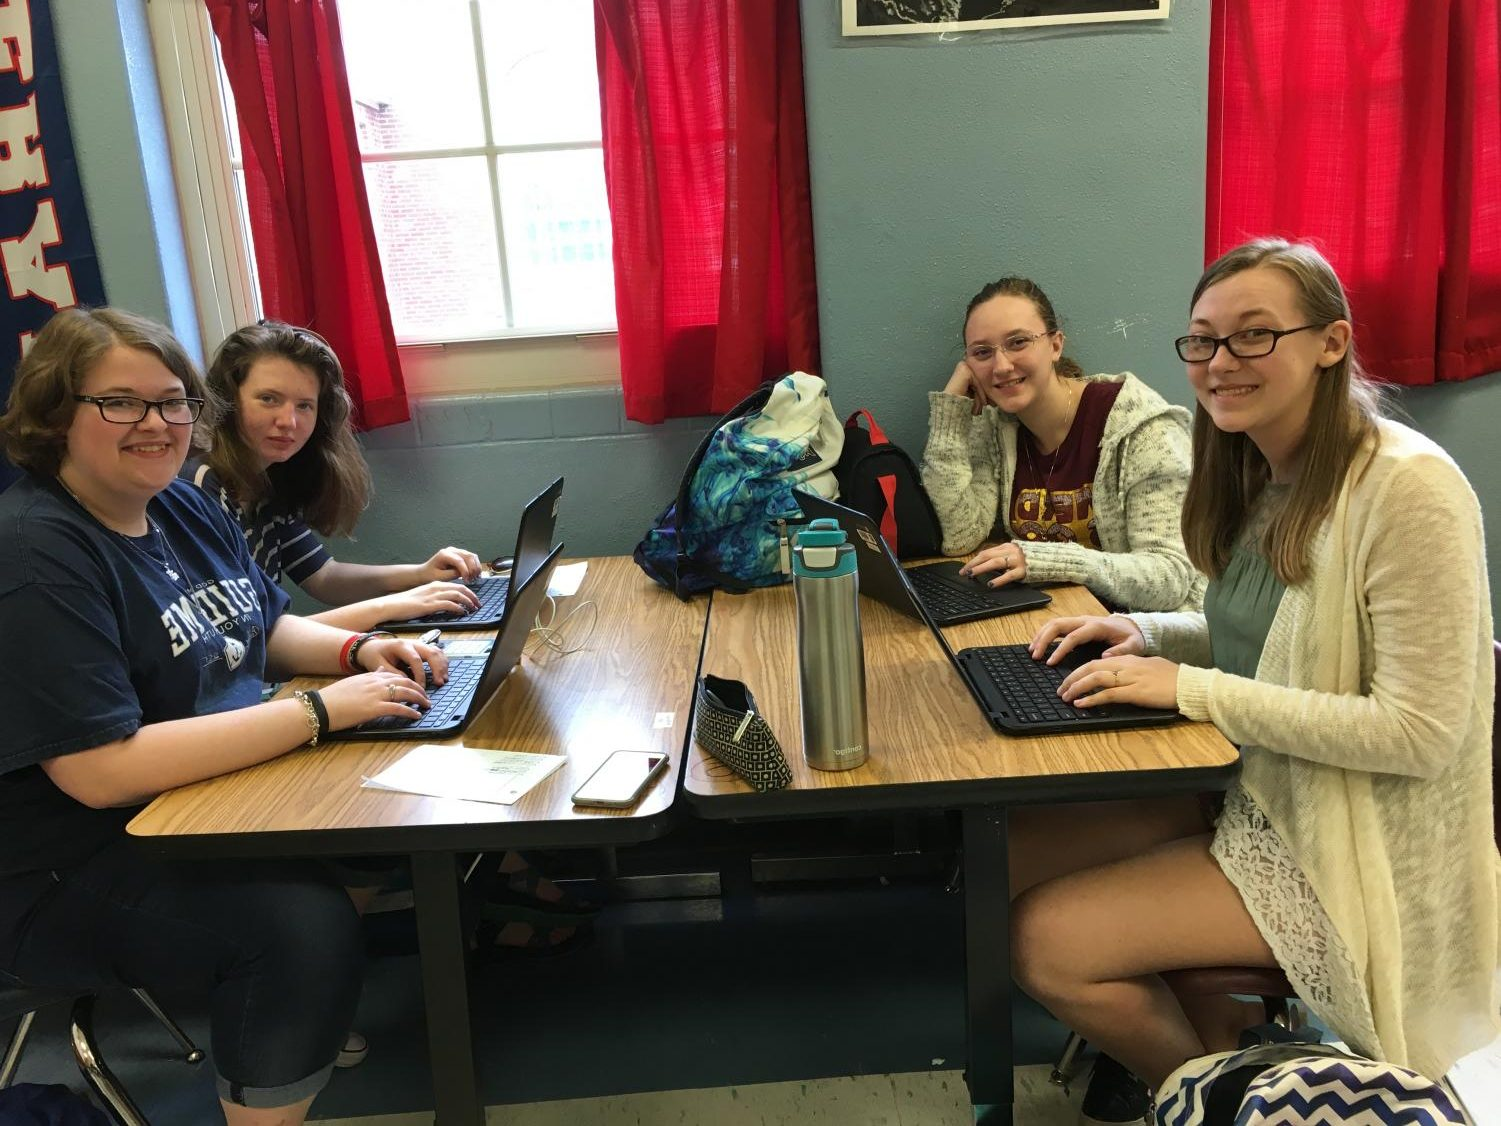 Staff Members of the Lafayette Times:  Rebecca Bishop, Victoria Steward, Laura McPherson, and Nikki Cesiro